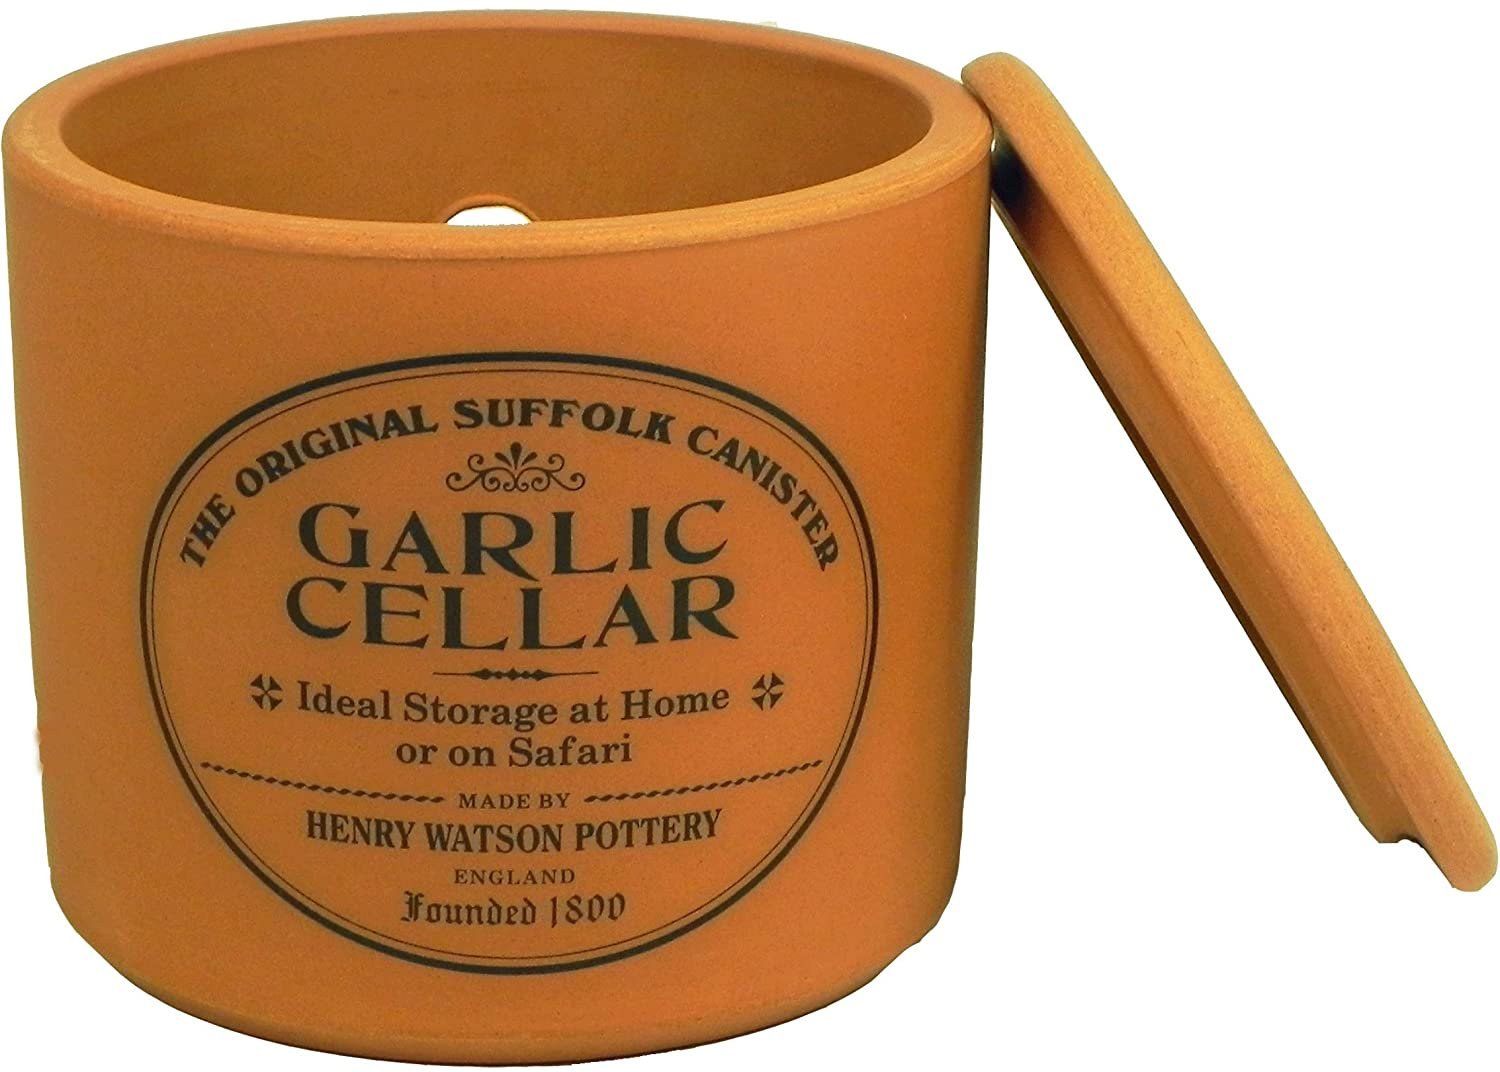 Henry Watson - Garlic Keeper - Terracotta - Made In England - 4.25 inches x 4 inches - The Original Suffolk Collection.